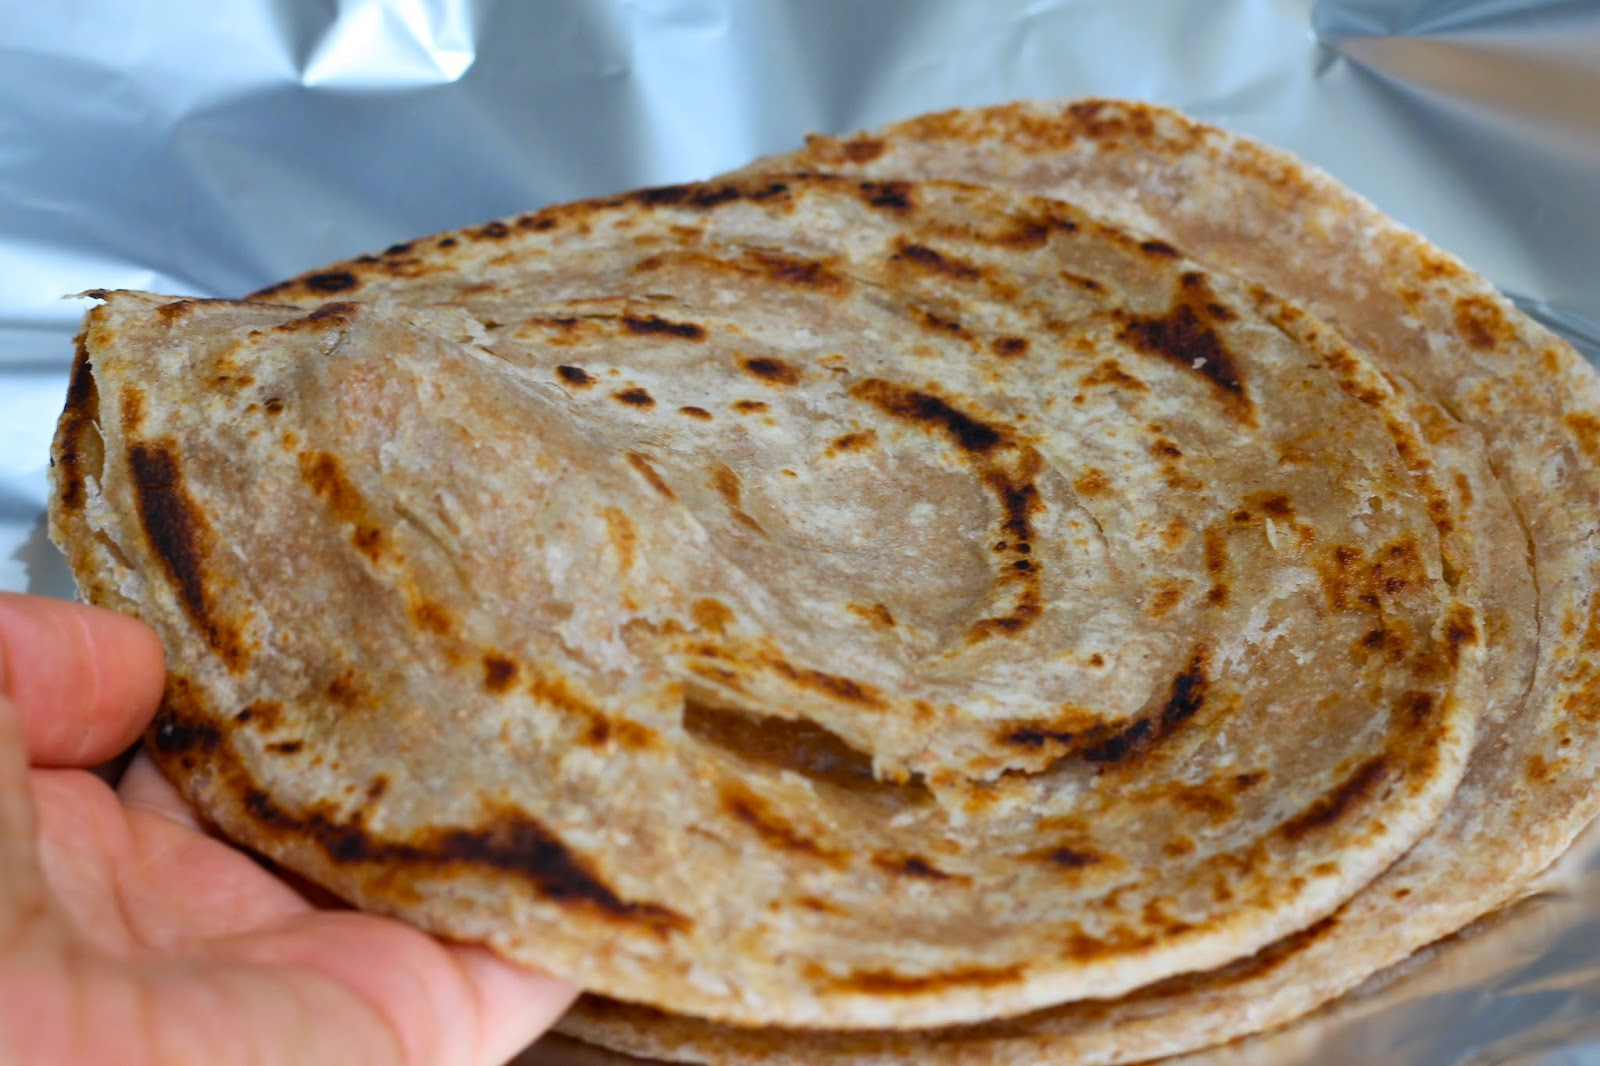 Flaky, freshly-made parathas